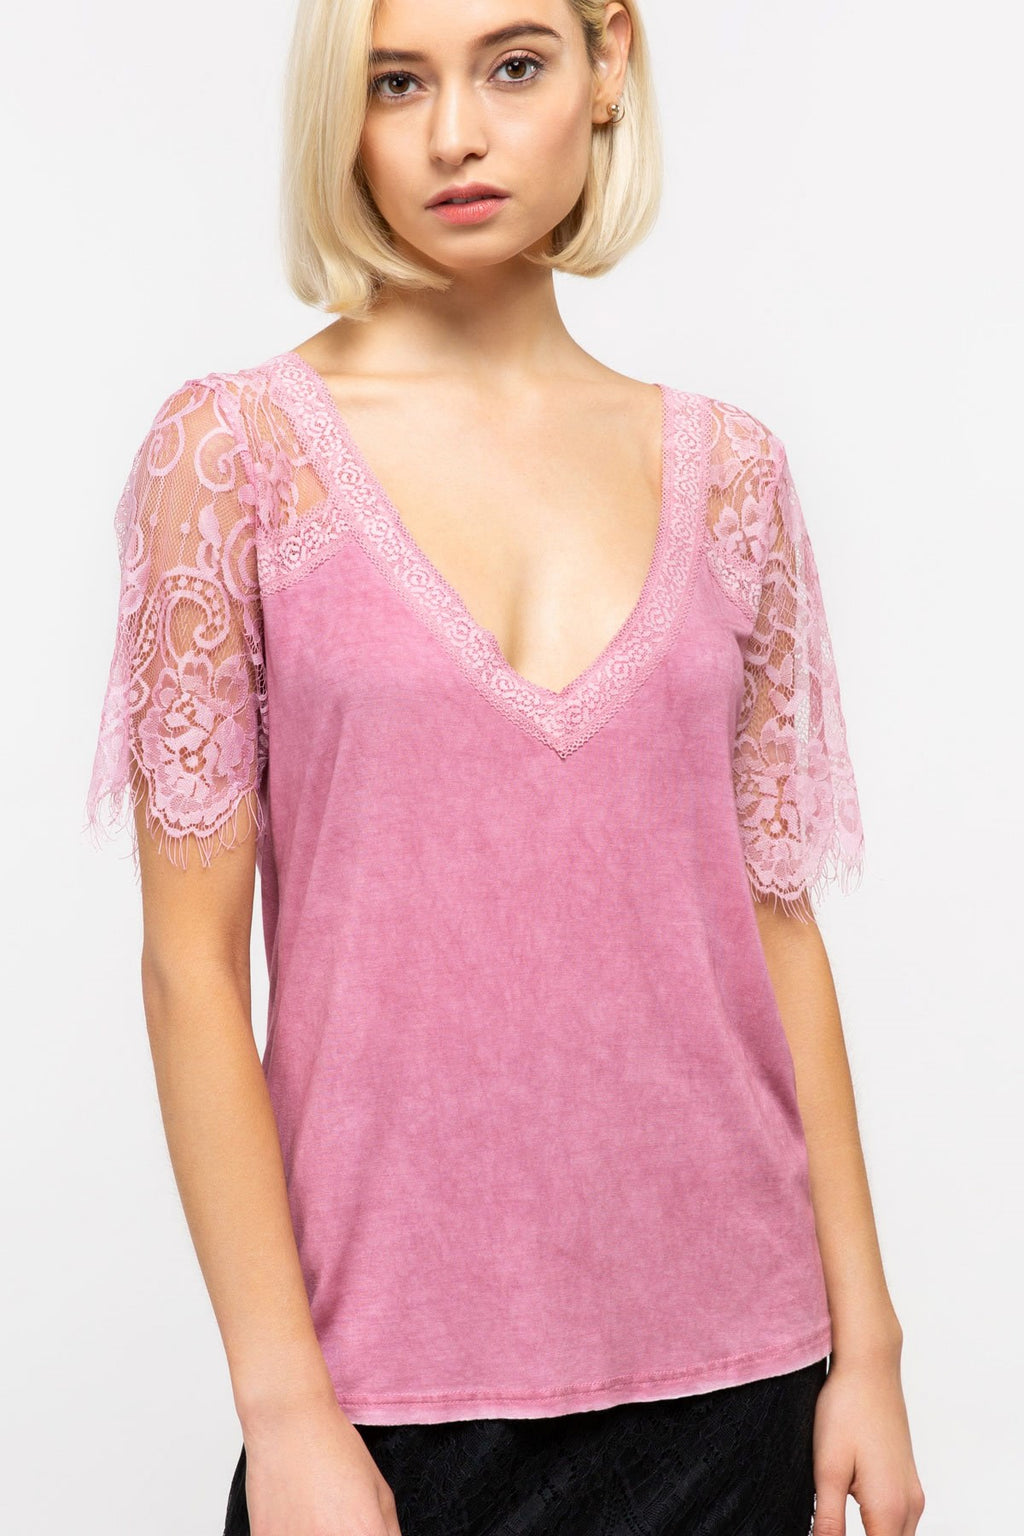 Lace Sleeve Raglan in Pink - Enclothe Boutique